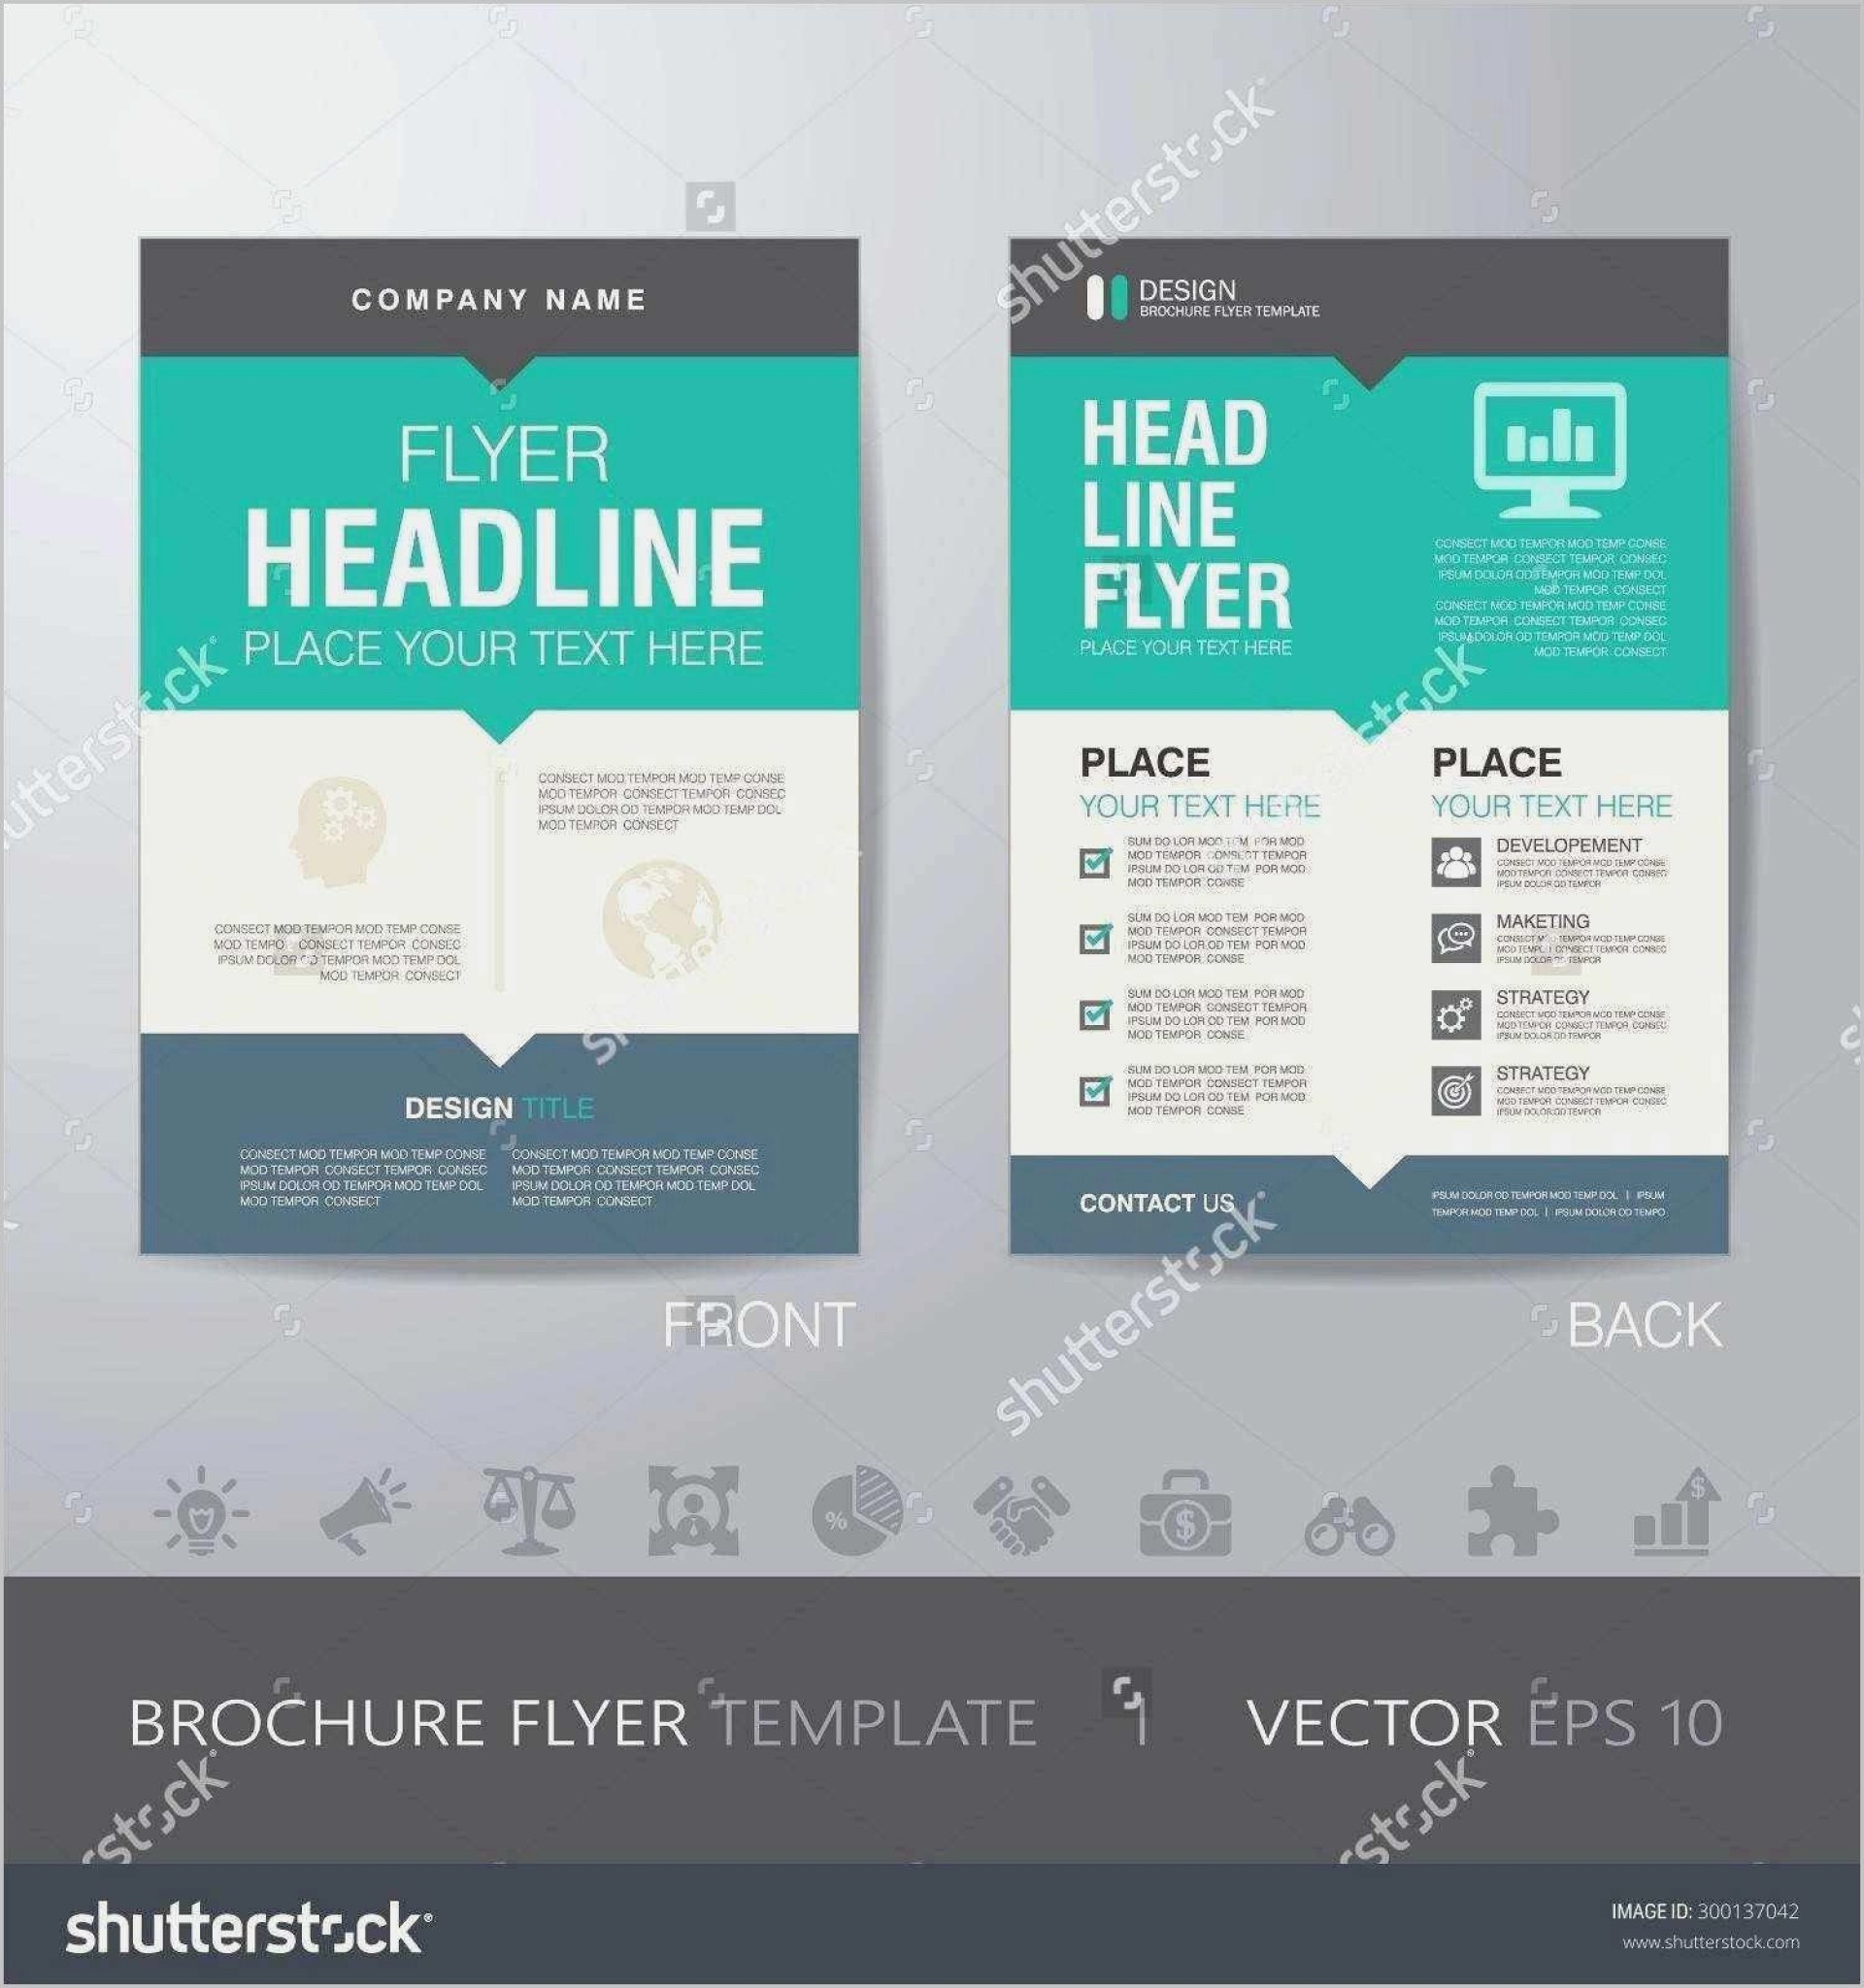 003 Astounding Microsoft Publisher Flyer Template High Resolution  Free Download Event Real Estate1920